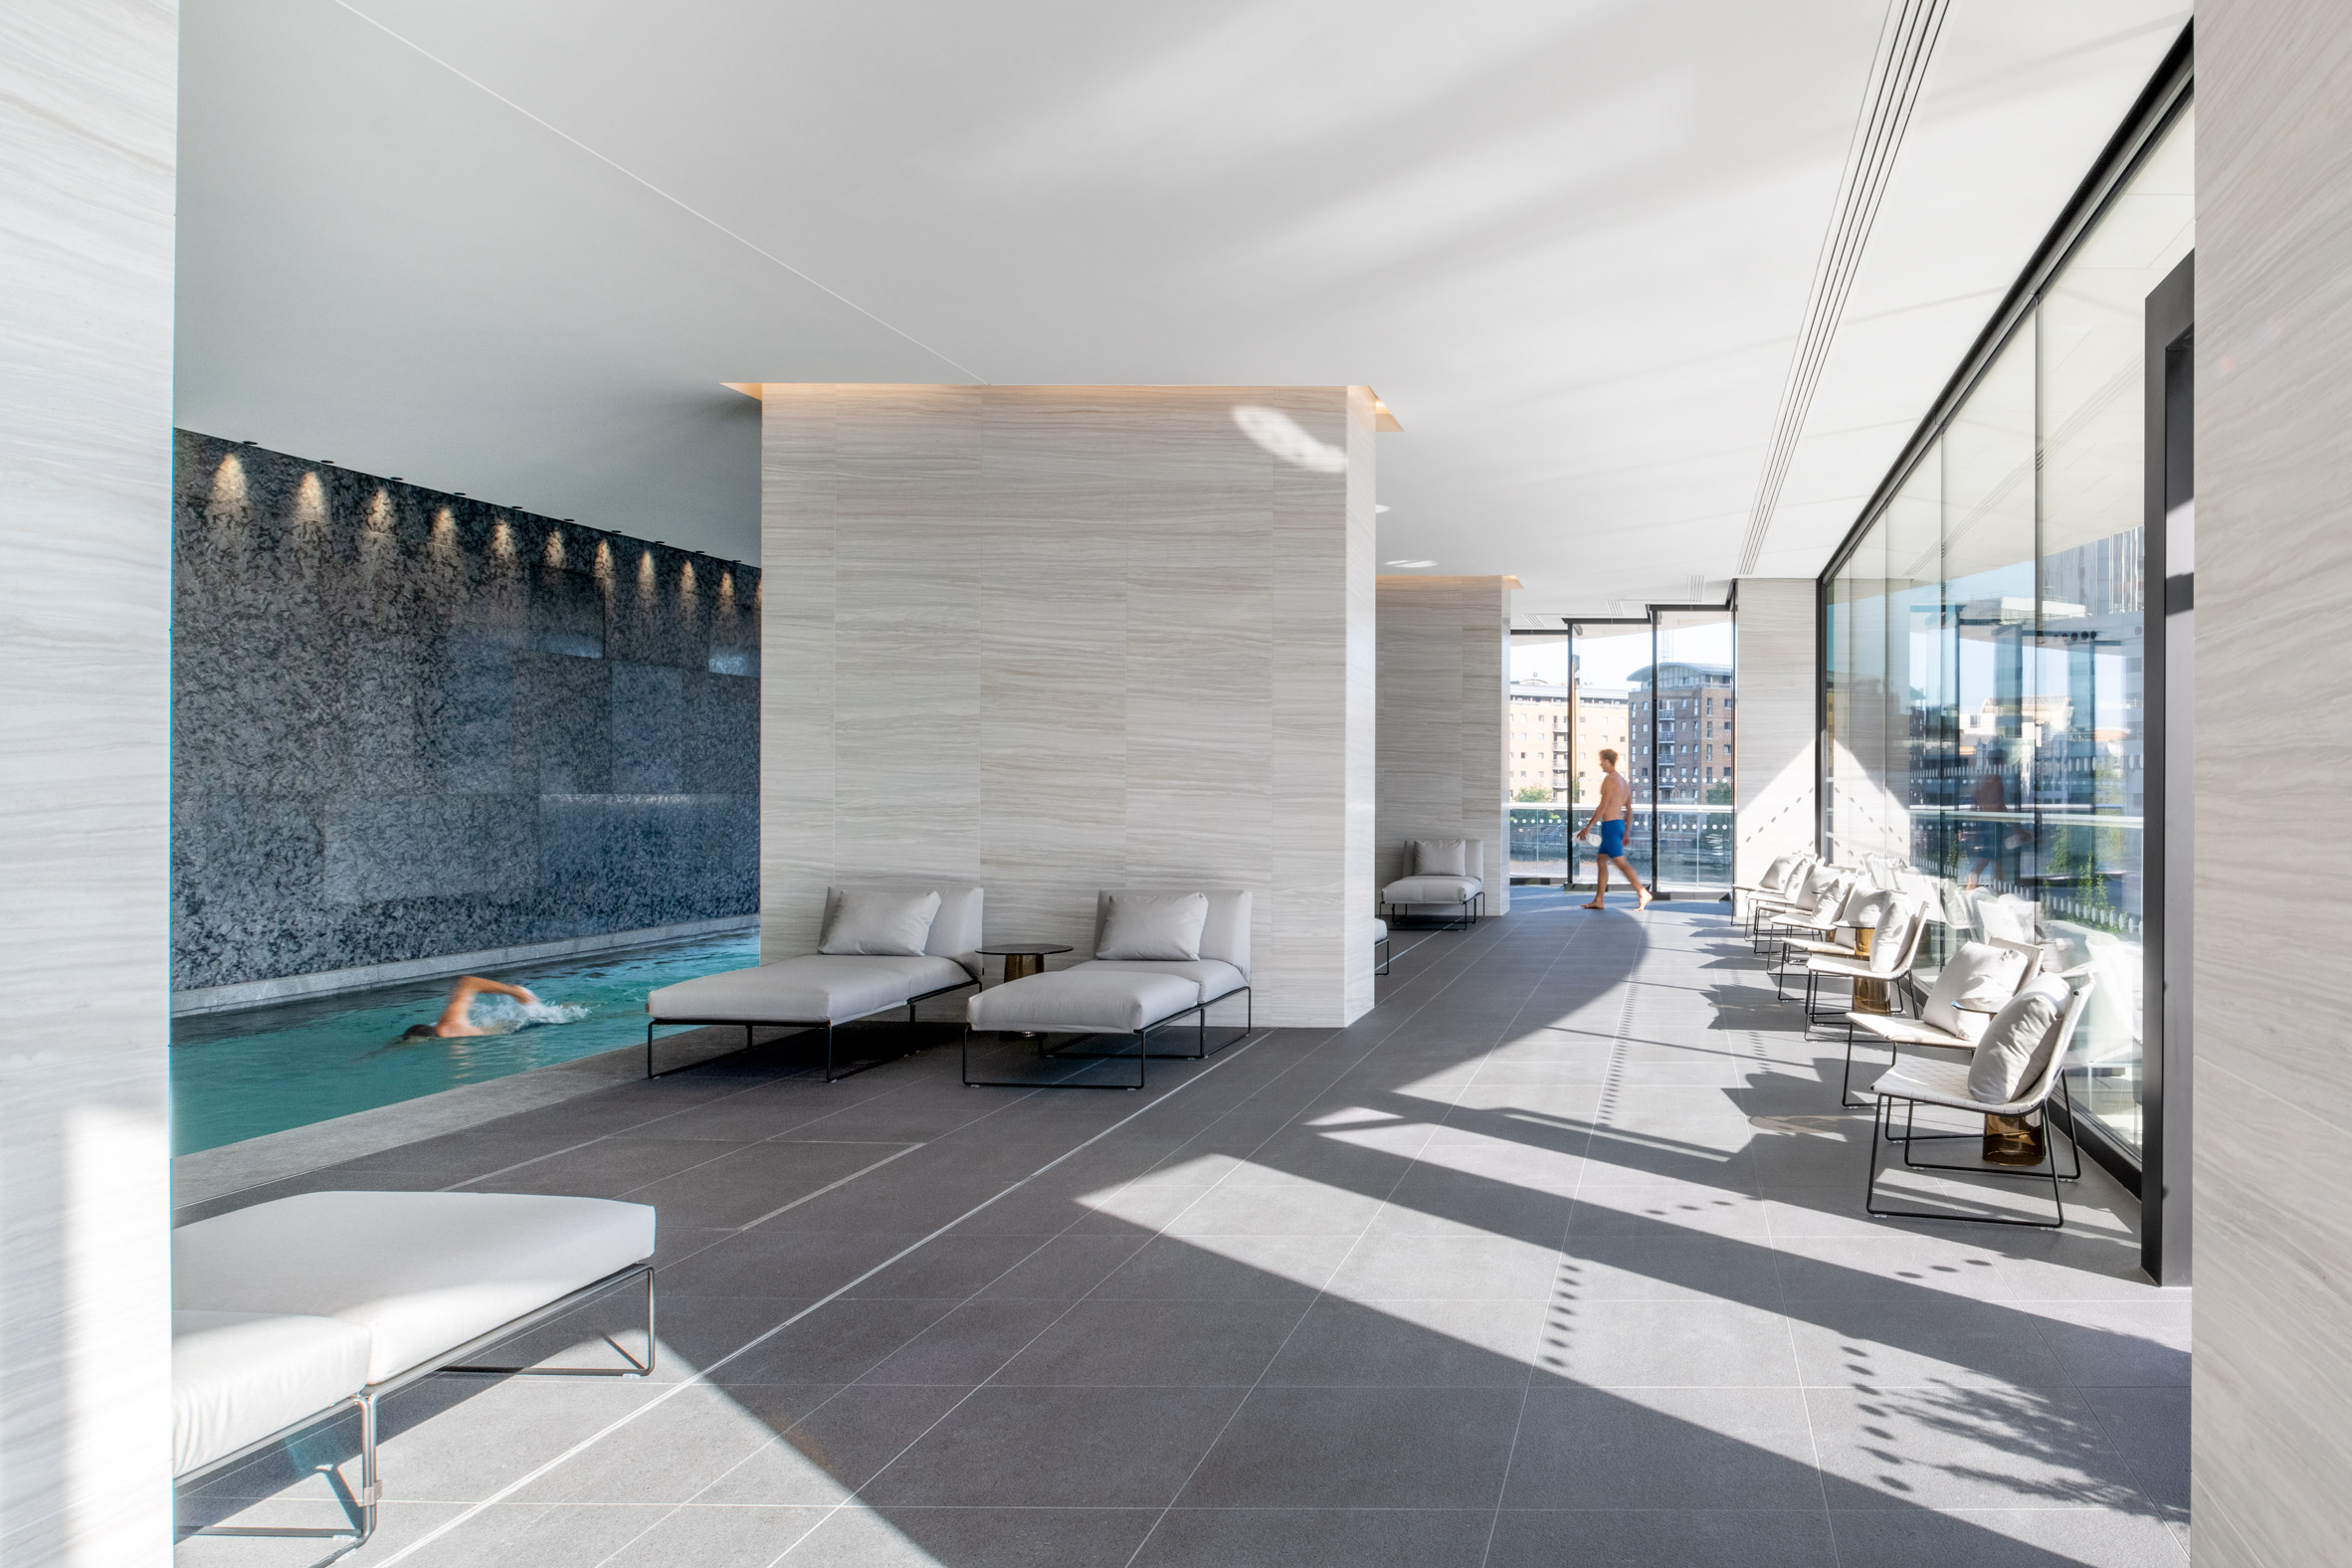 Gym with swimming pool